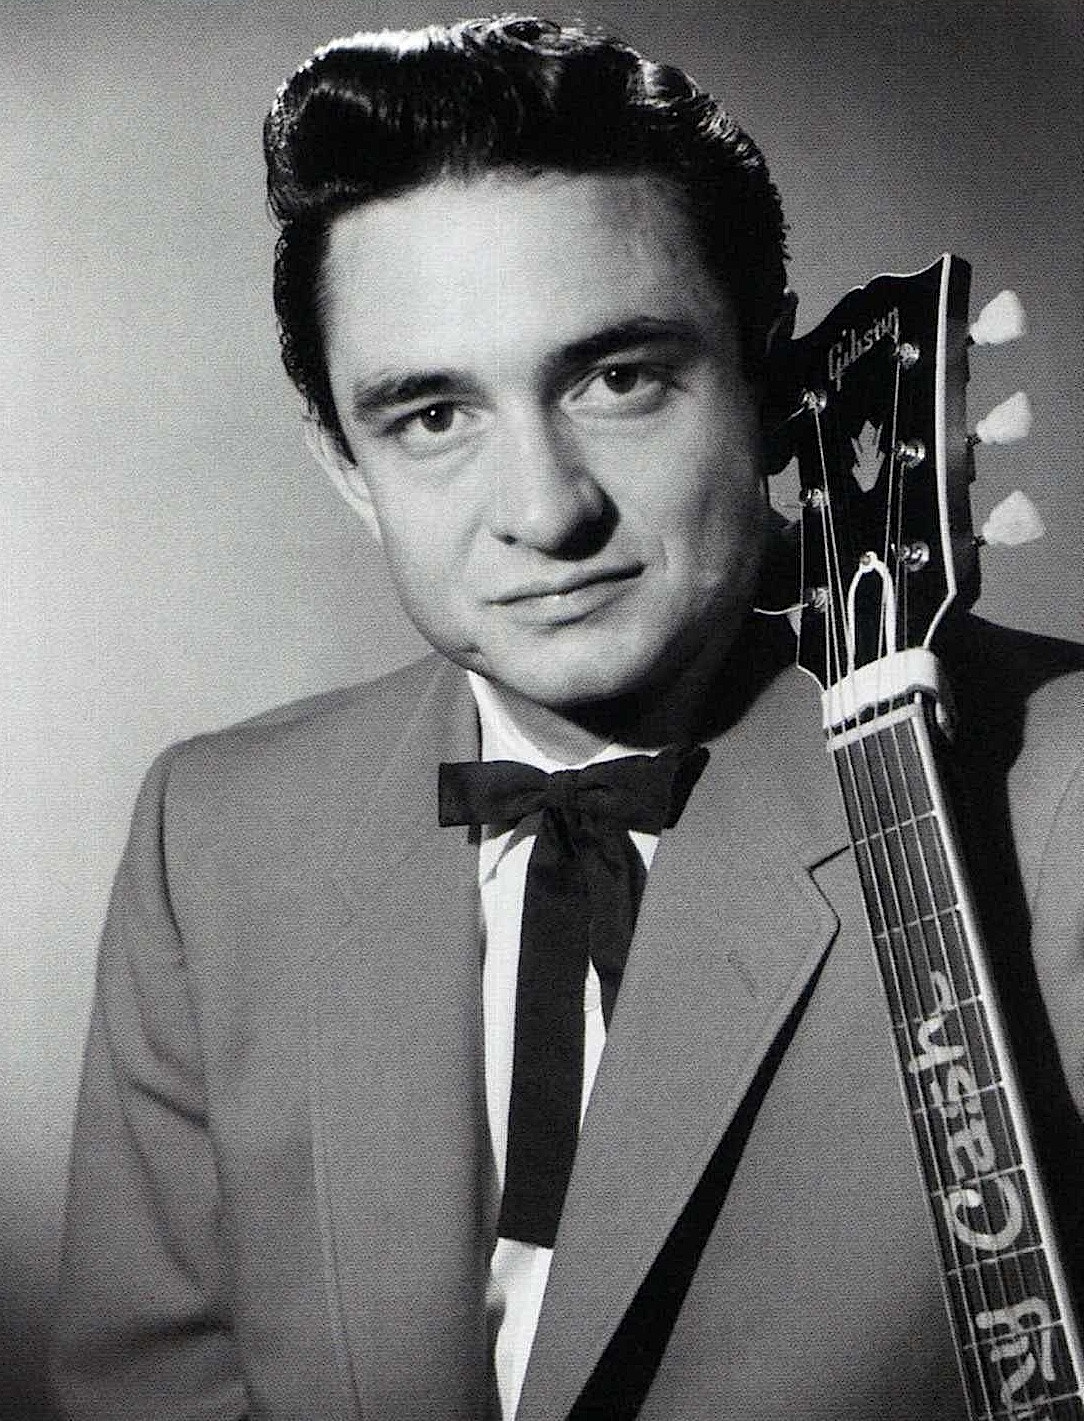 The Perlich Post: Rare early Johnny Cash images & audio released